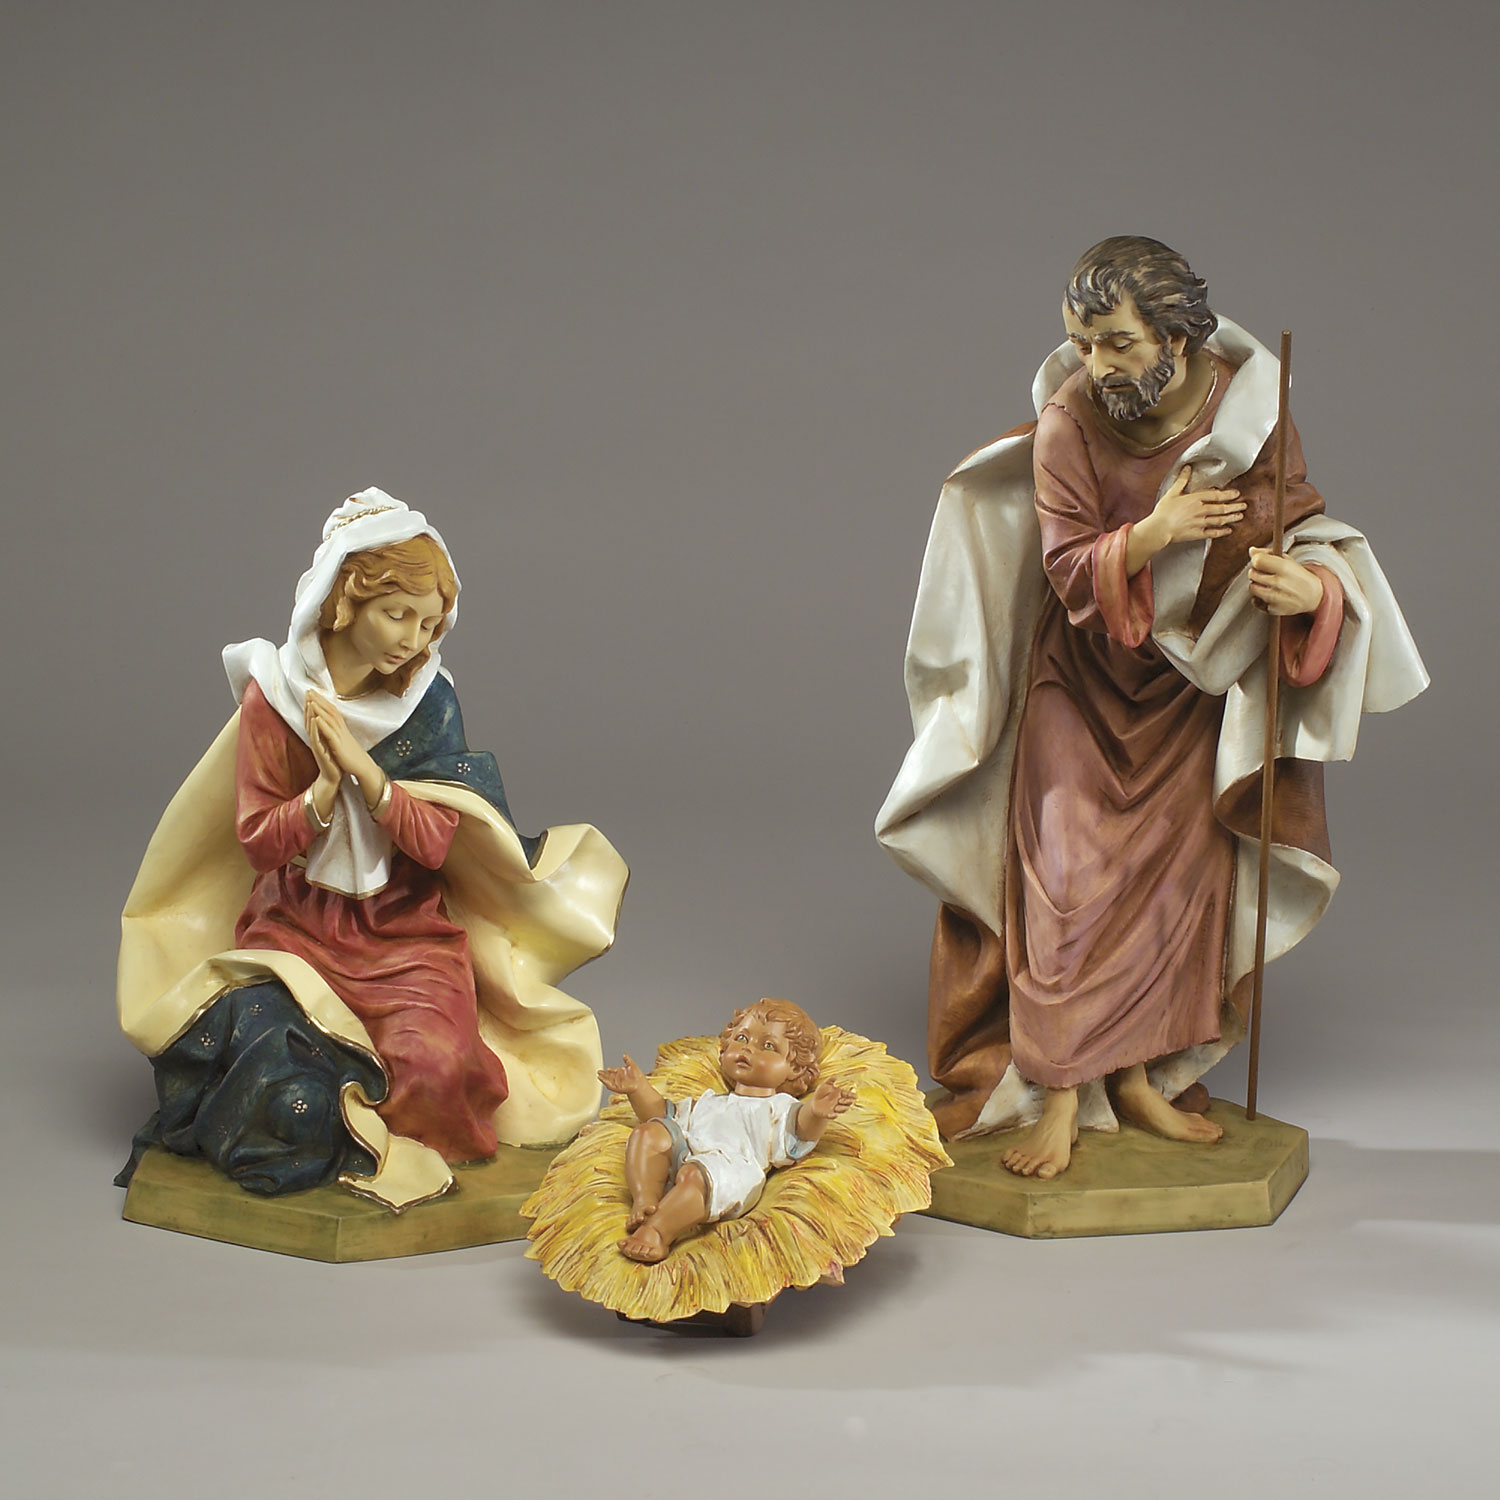 Holy Family Outdoor Christmas Decoration Nativity Scene By Collections Etc